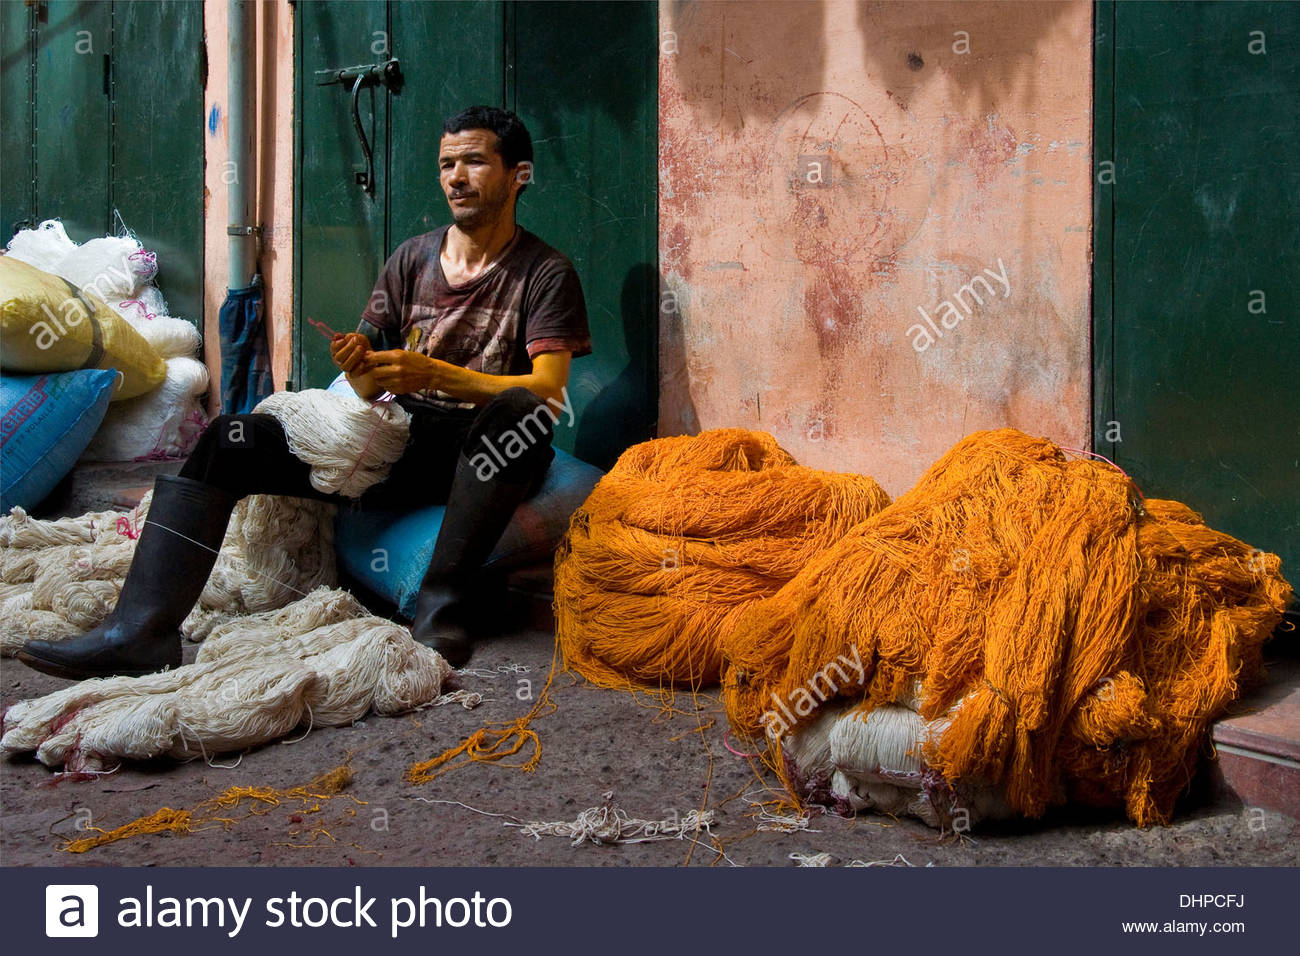 Morocco,Marrakech,Man working the wool - Stock Image